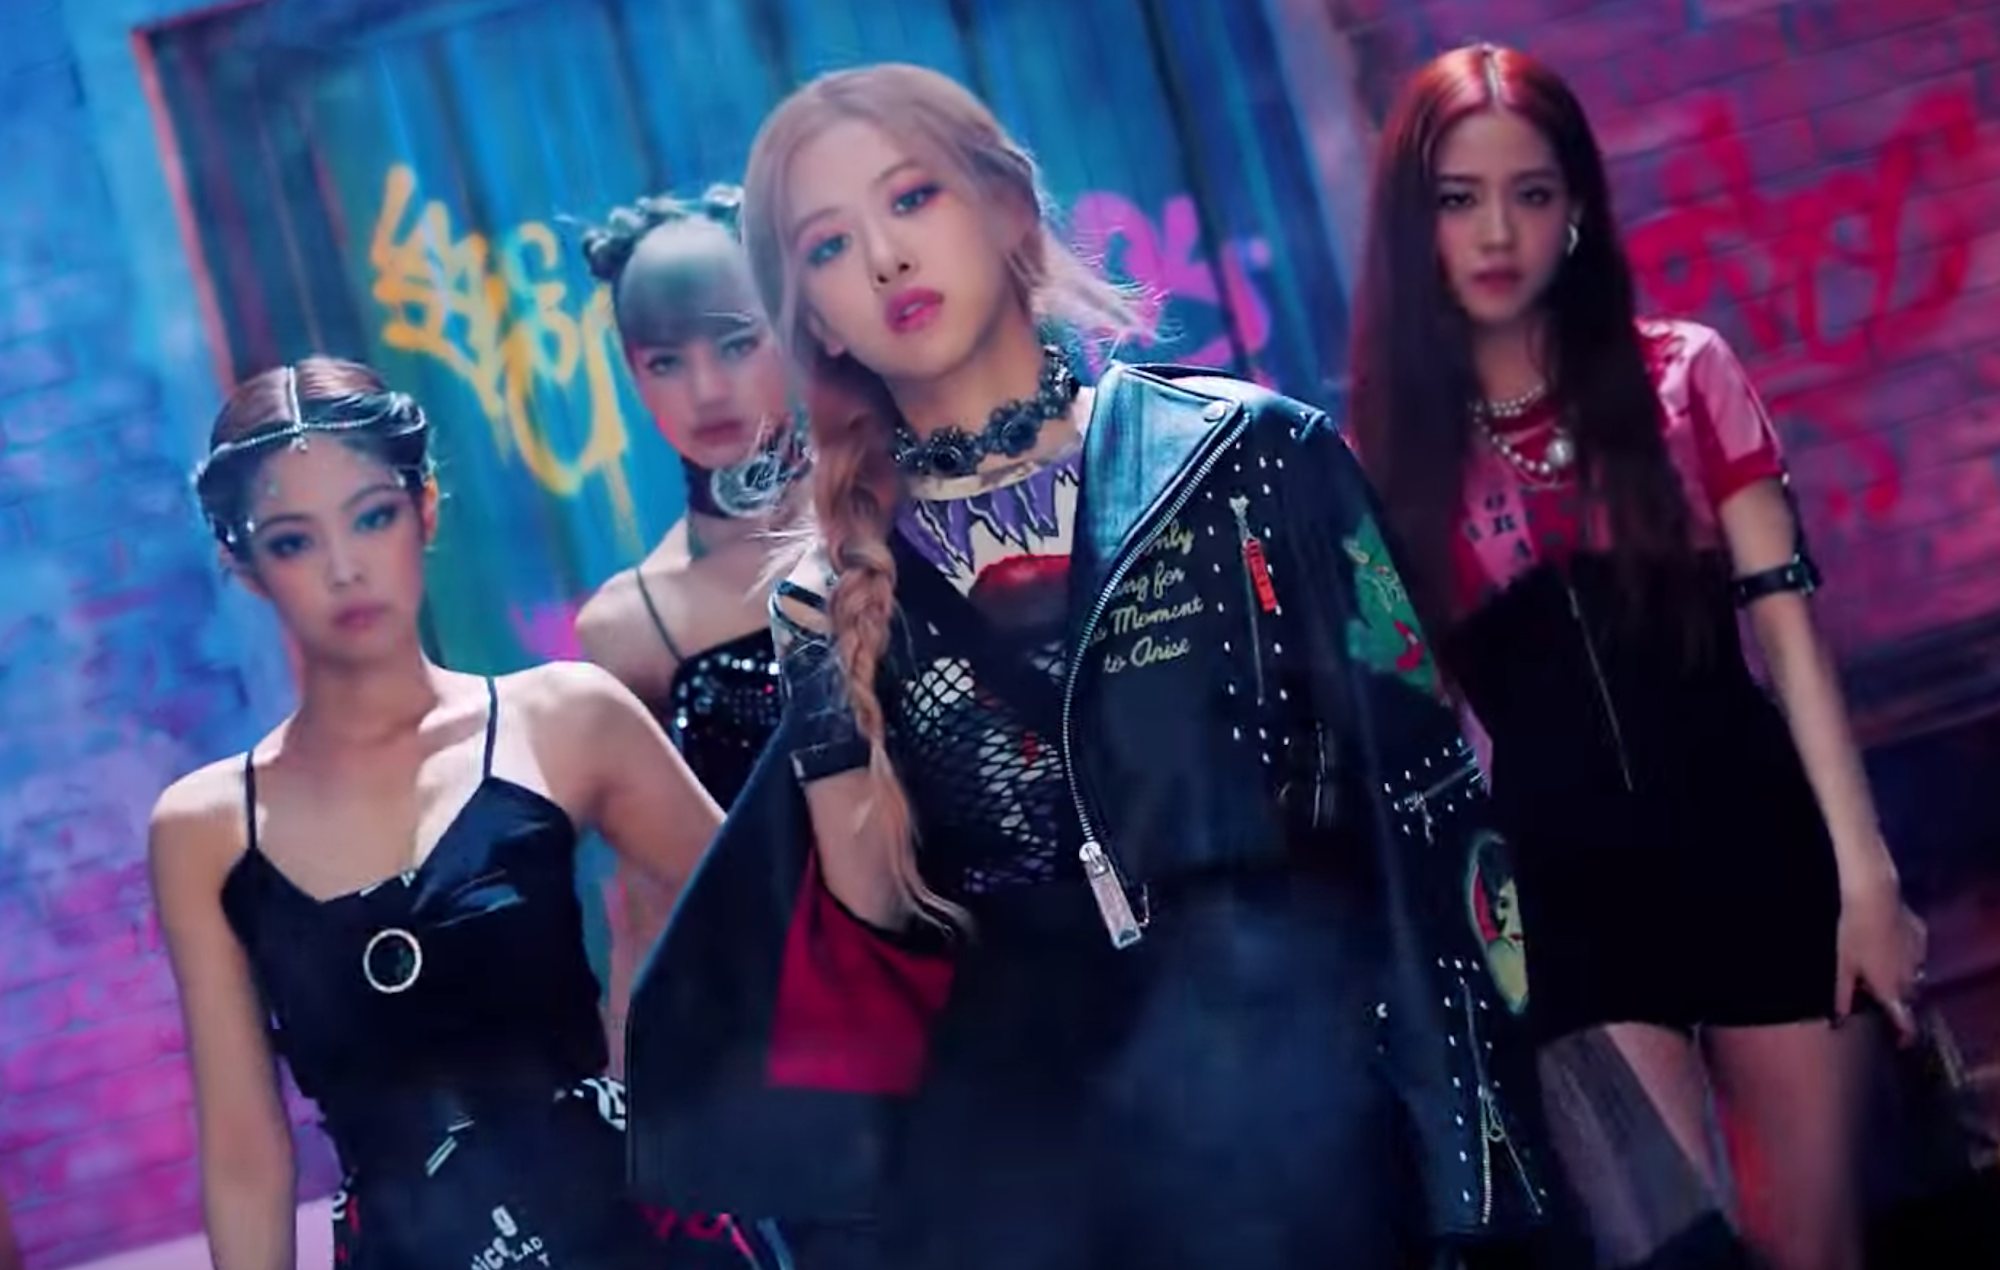 Watch BLACKPINK's powerful, cinematic video for new track 'Kill This Love'